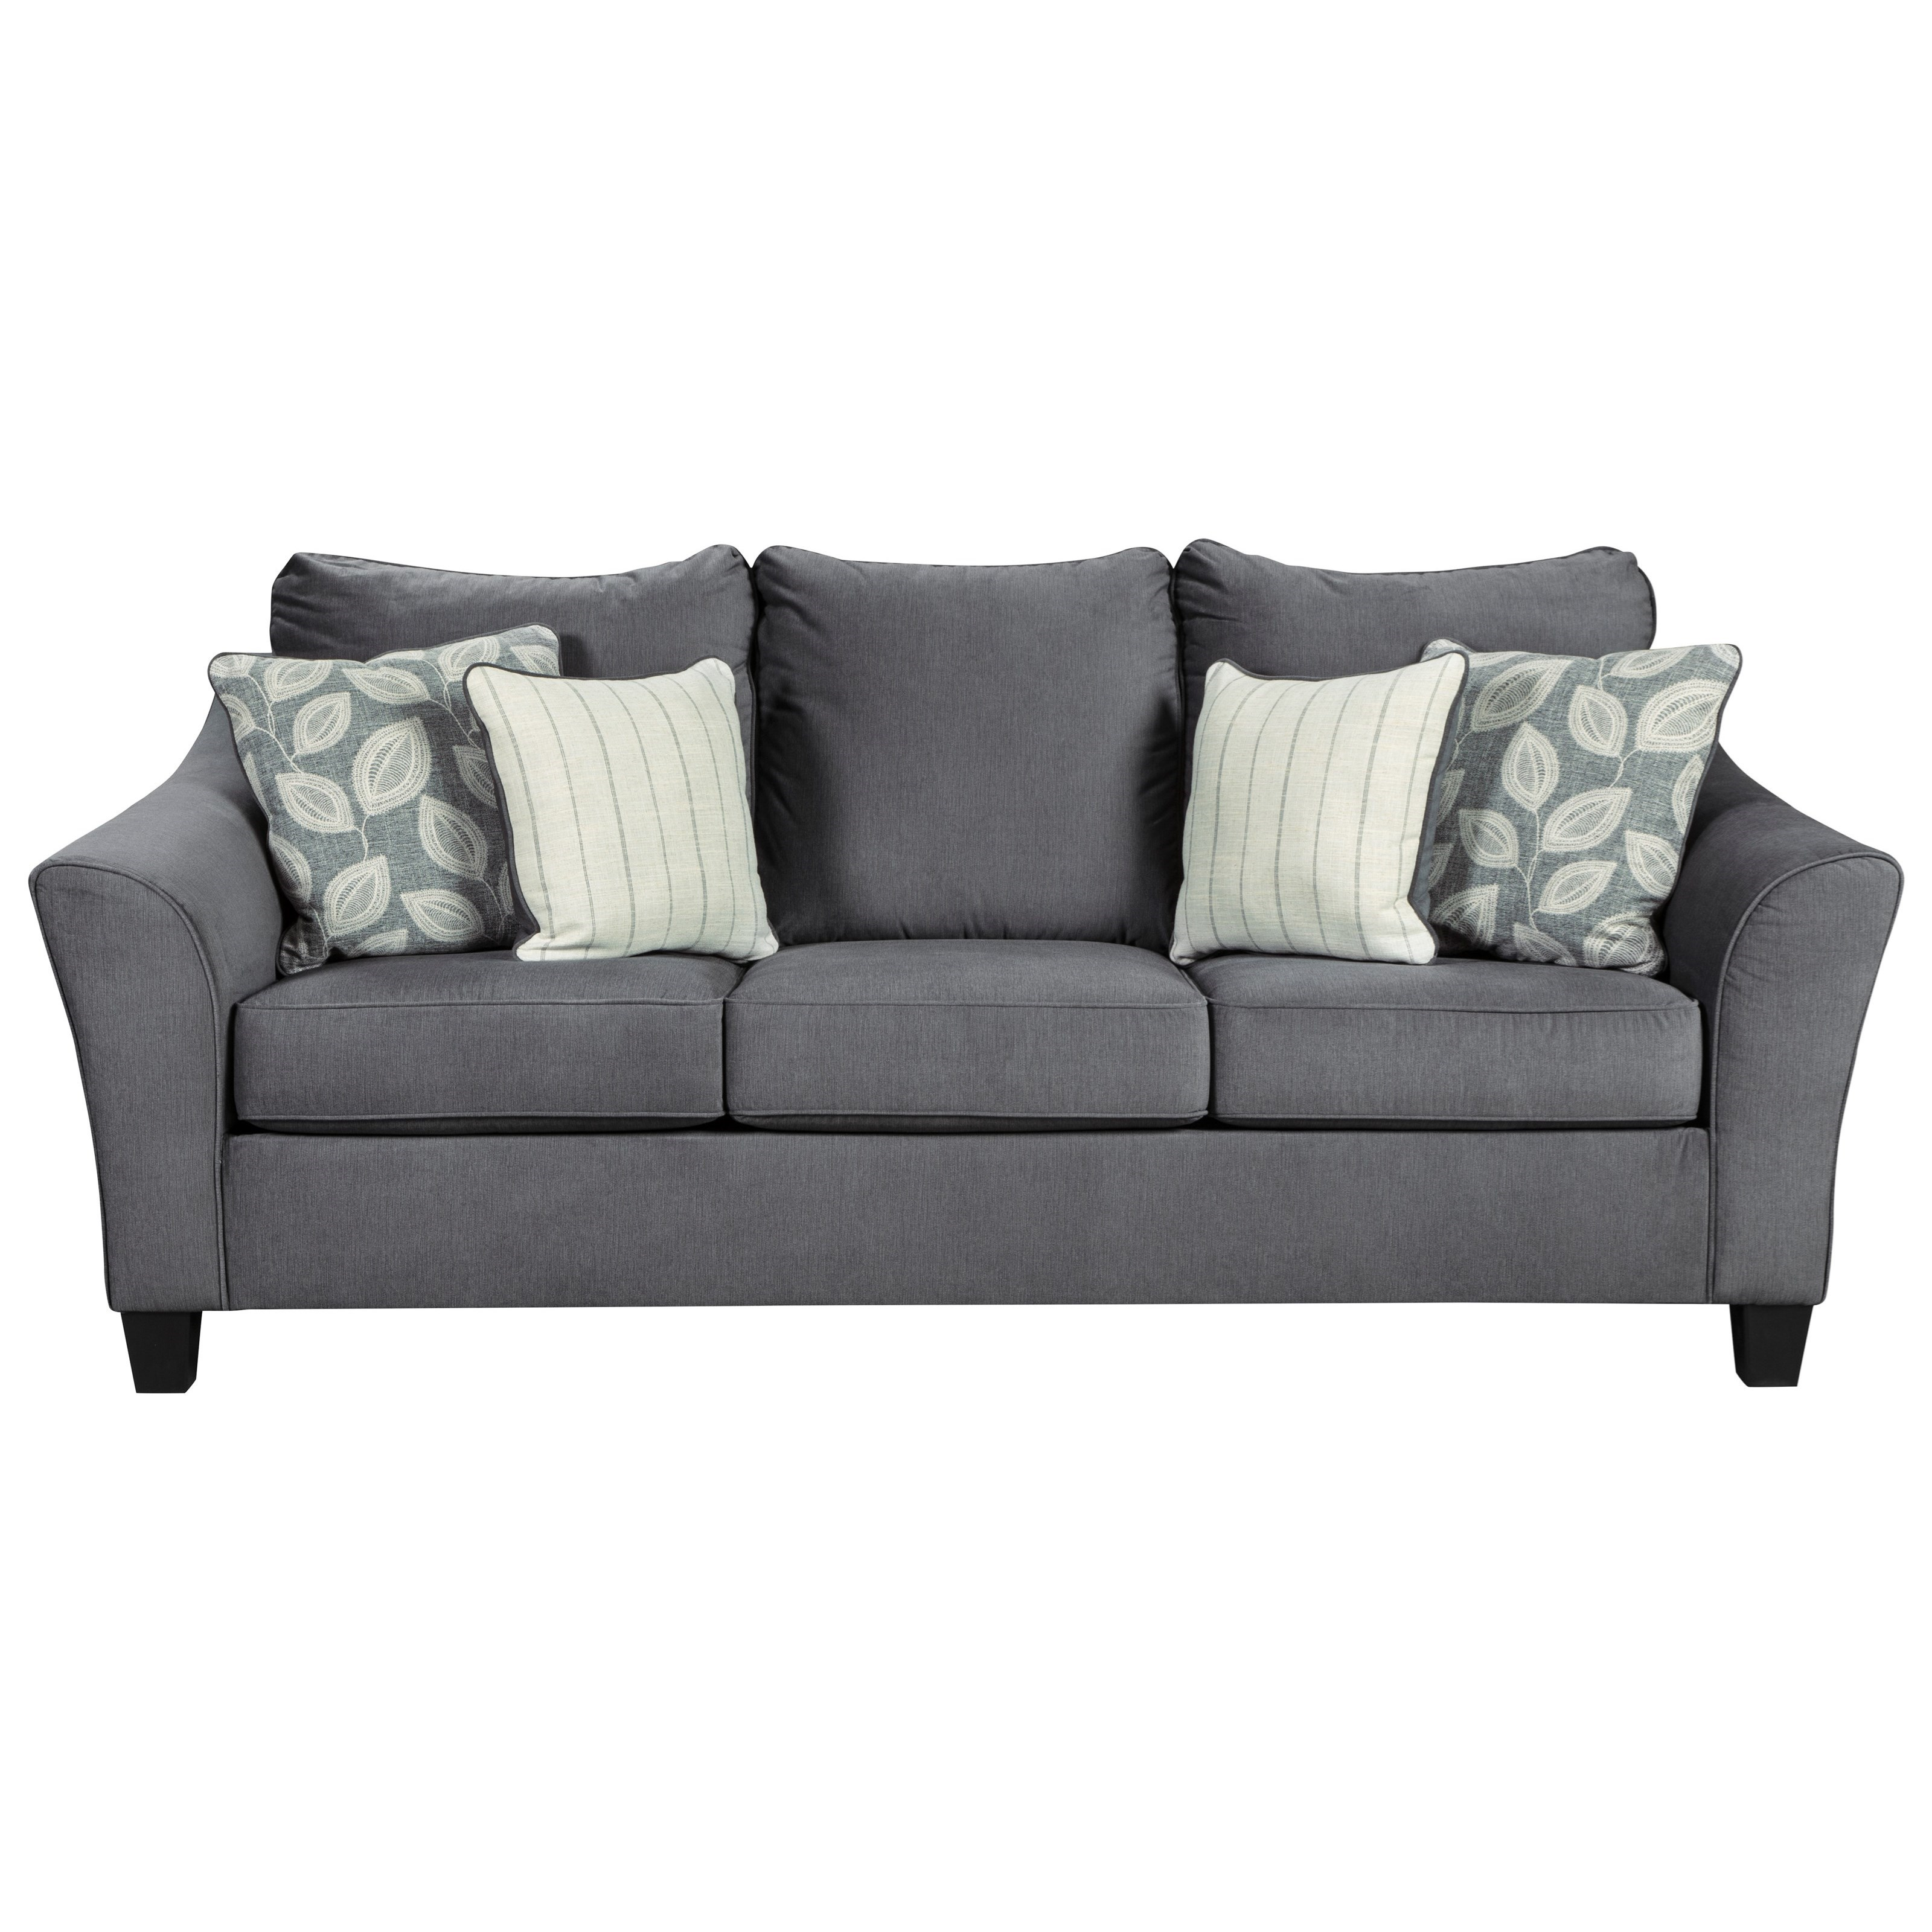 Signature Design By Ashley Sanzero Queen Sleeper Sofa With